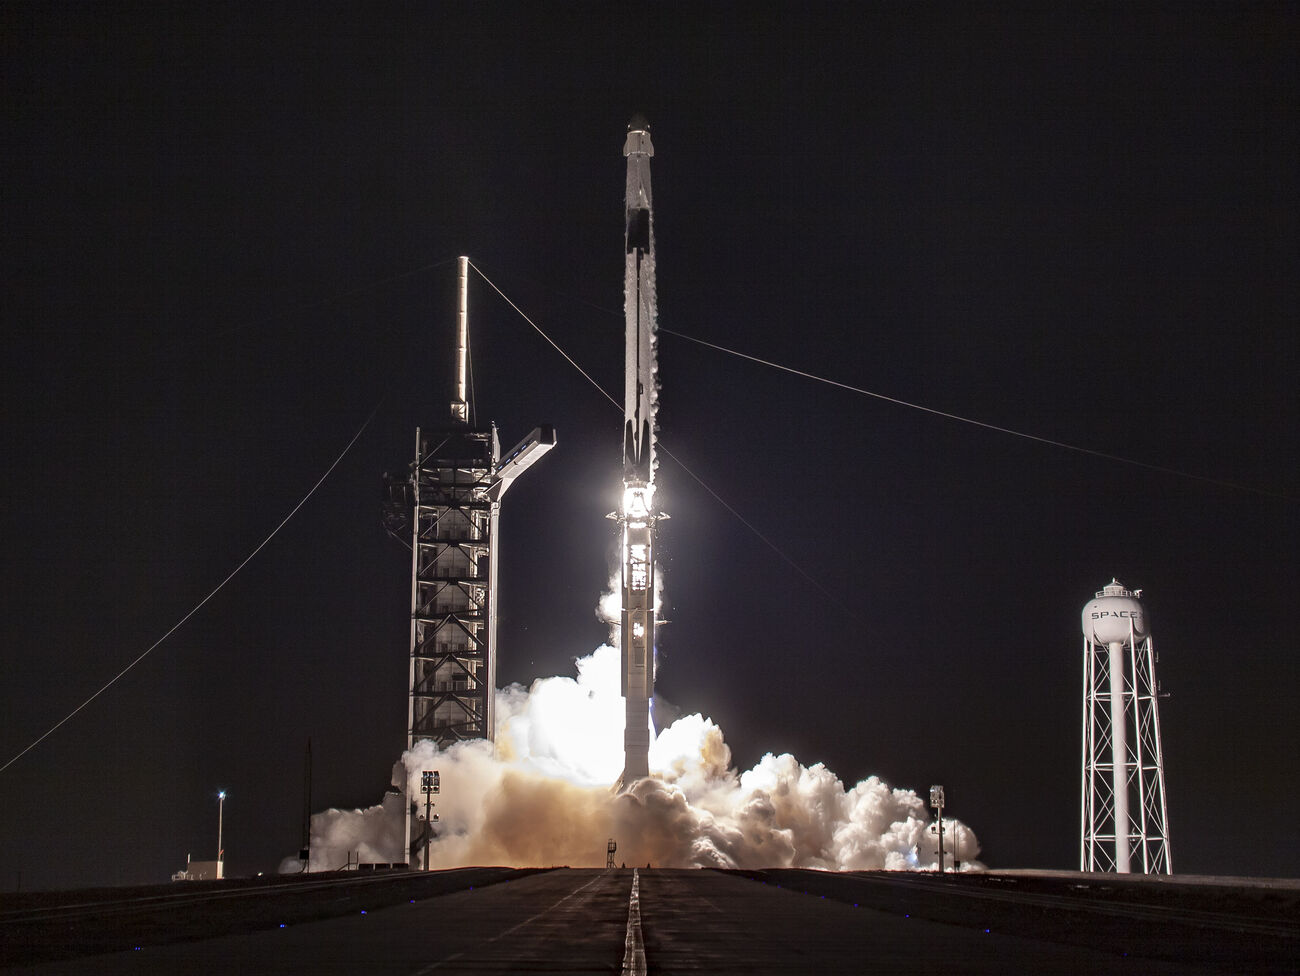 SpaceX launched another 60 Starlink / GORDON satellites into orbit